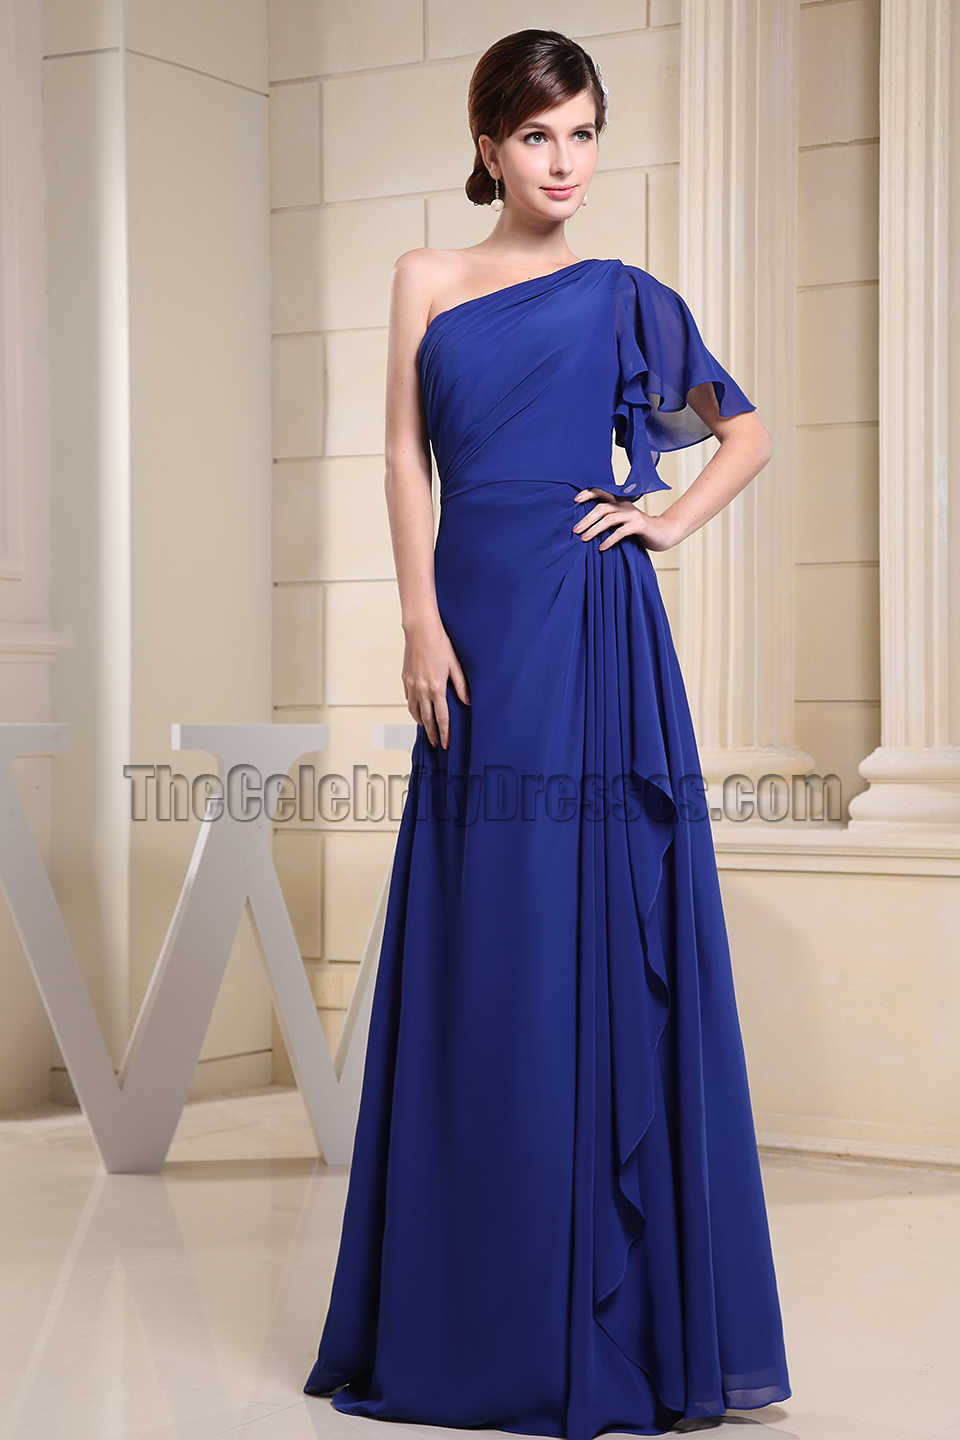 Discount Royal Blue One Shoulder Prom Dress Evening Dresses ...